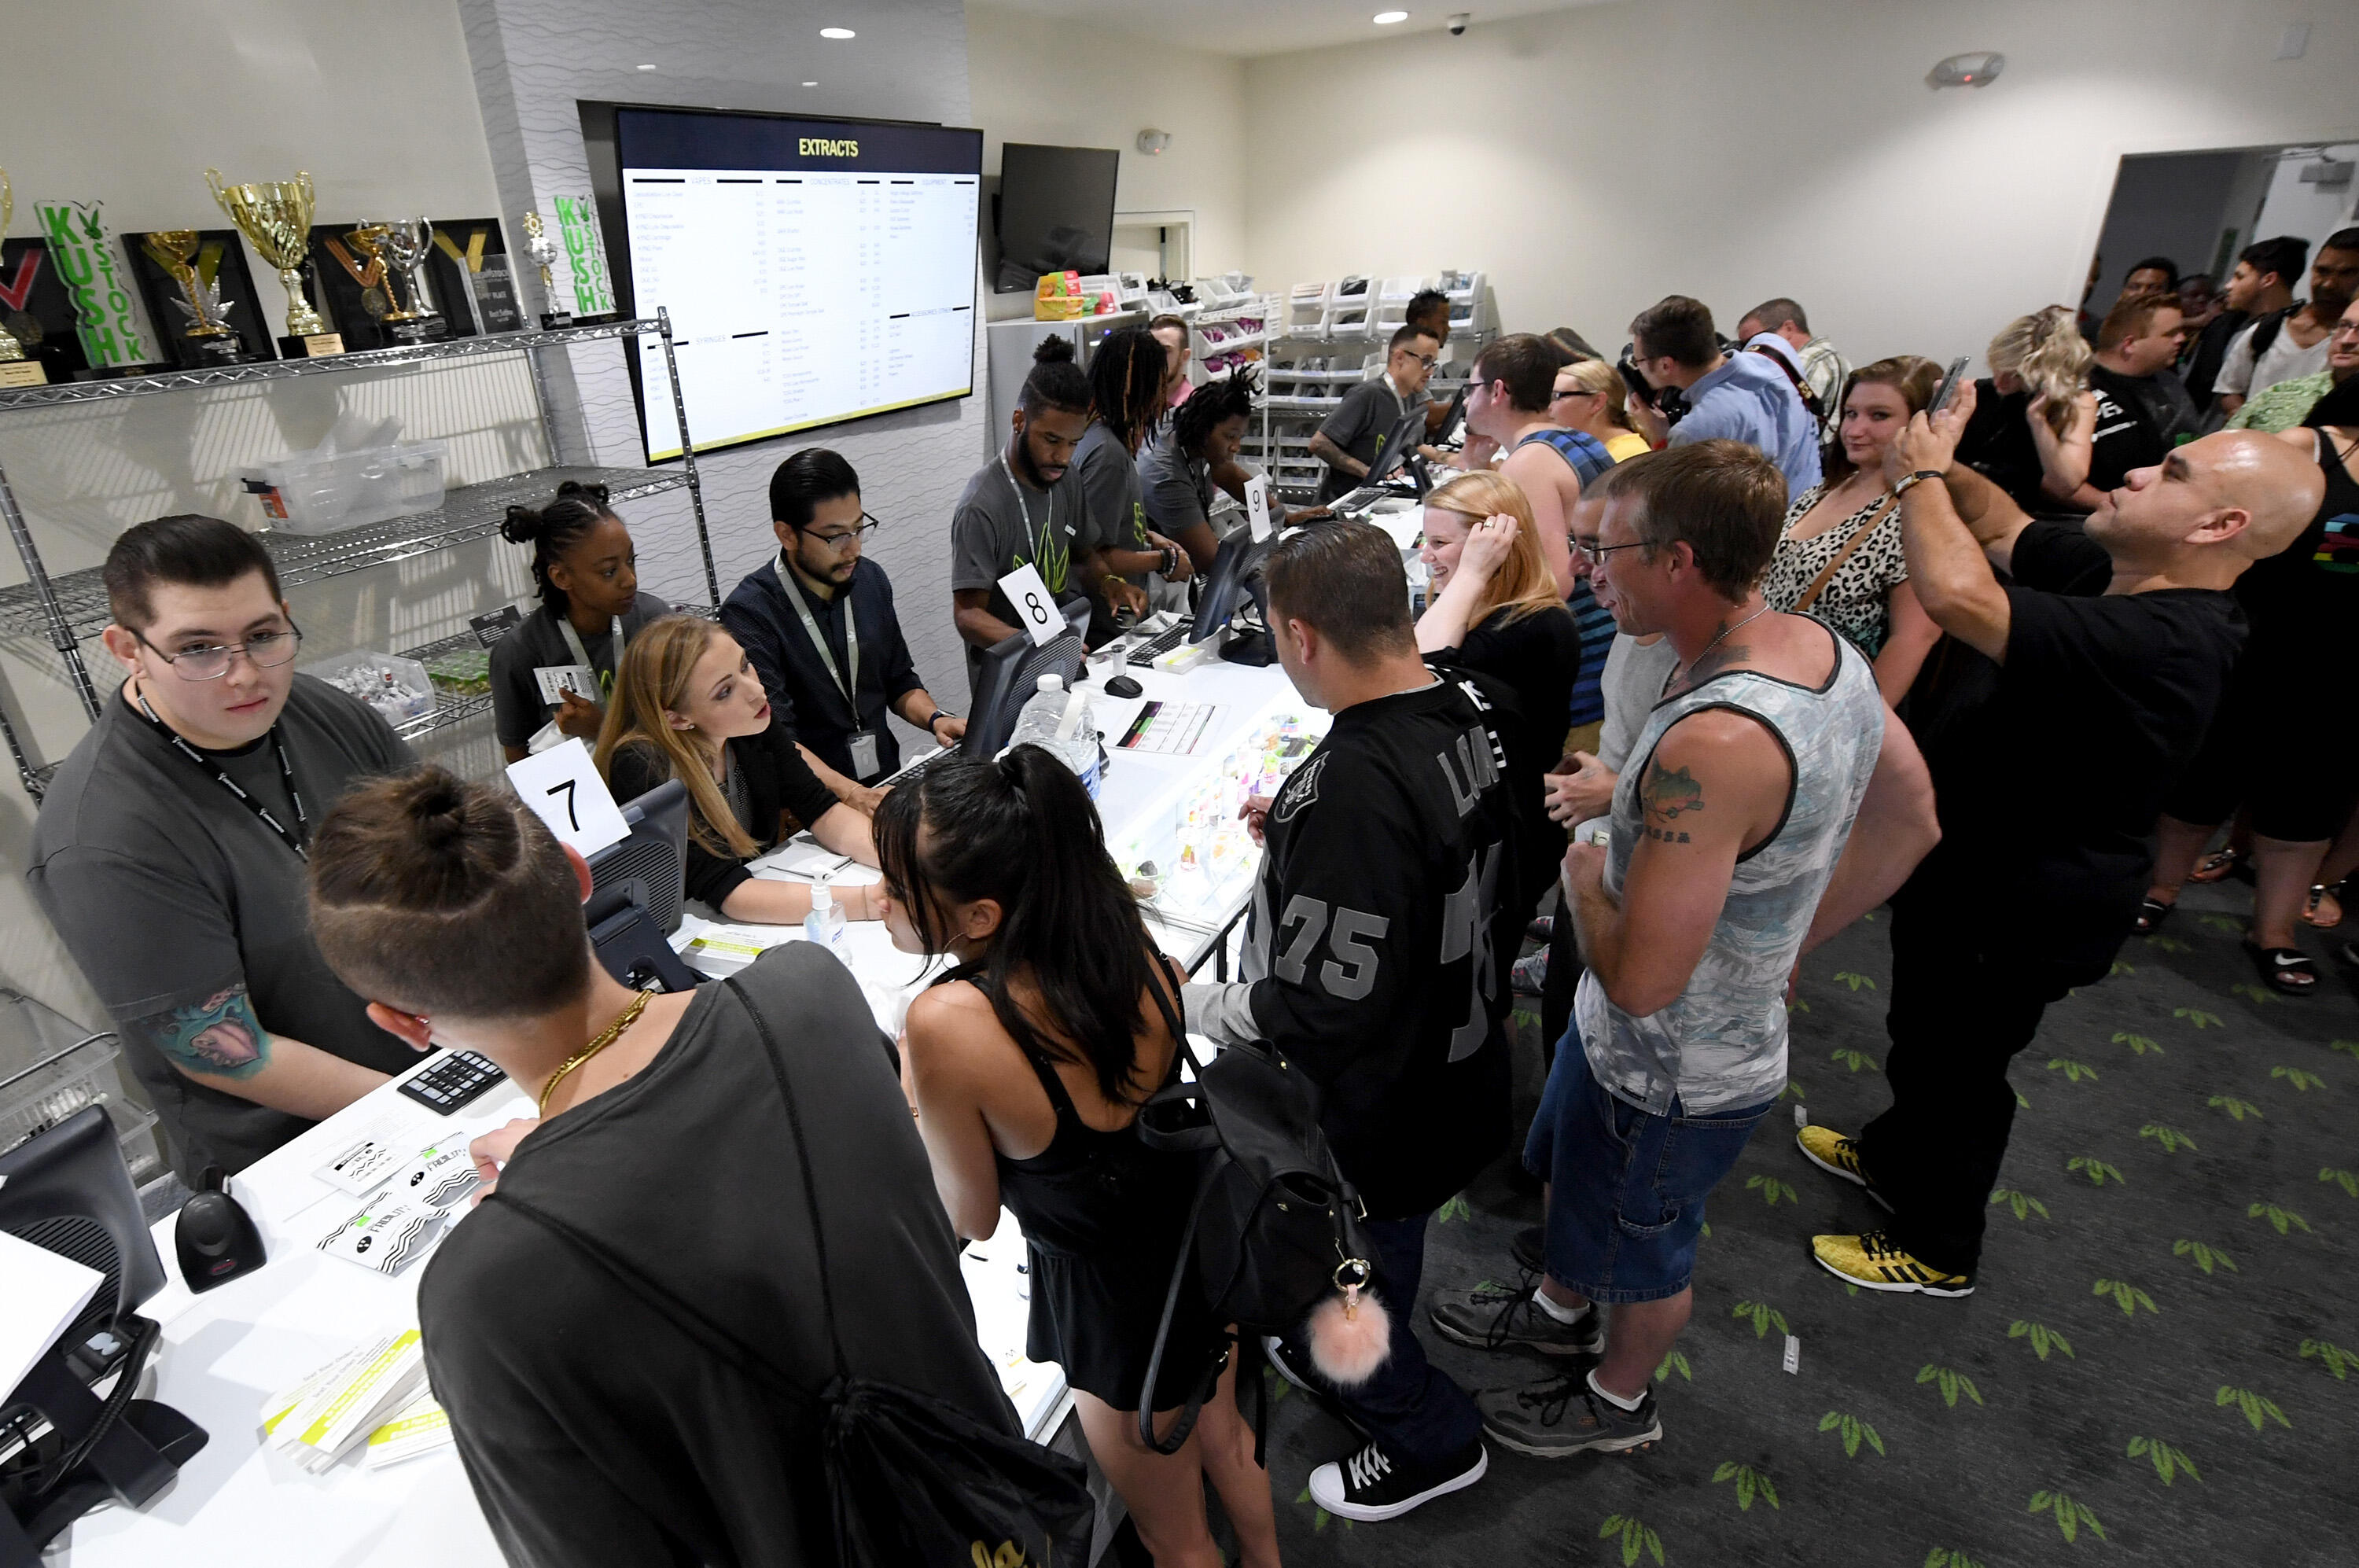 LAS VEGAS, NV - JULY 01:  Customers buy cannabis products at Essence Vegas Cannabis Dispensary after the start of recreational marijuana sales began on July 1, 2017 in Las Vegas, Nevada. Nevada joins seven other states allowing recreational marijuana use